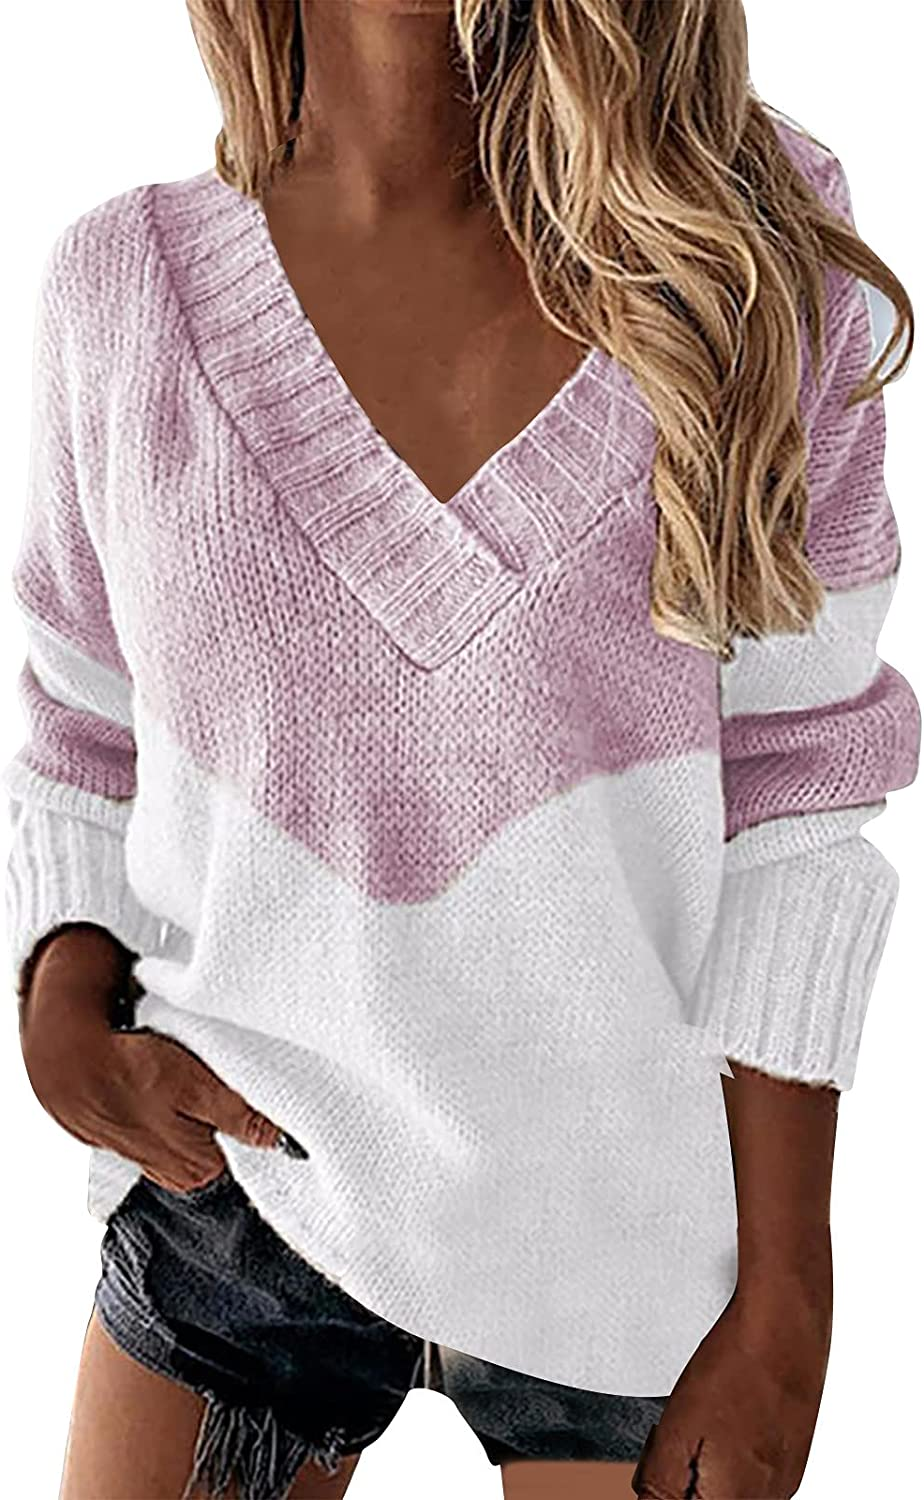 Fall Sweaters for Women Long Sleeve V-Neck Fashion Stitching Knitted Shirt Casual Pullover